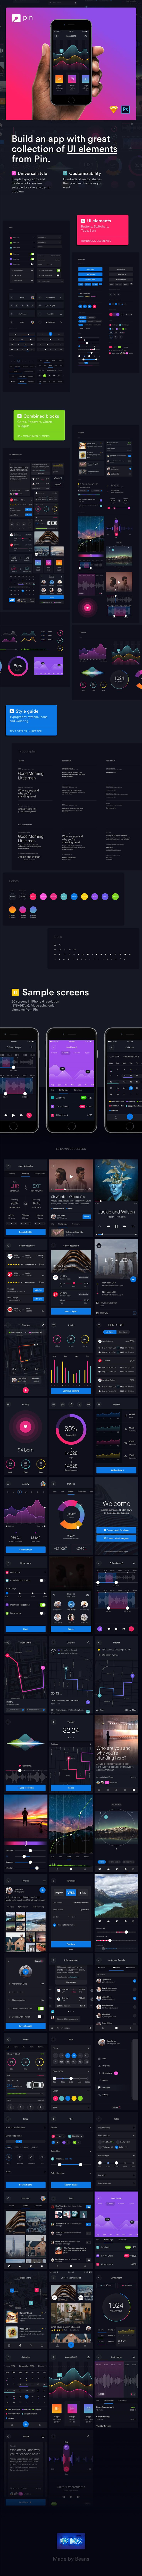 Pin UI Kit – Elements for your app by Beans UI Goods on @creativemarket